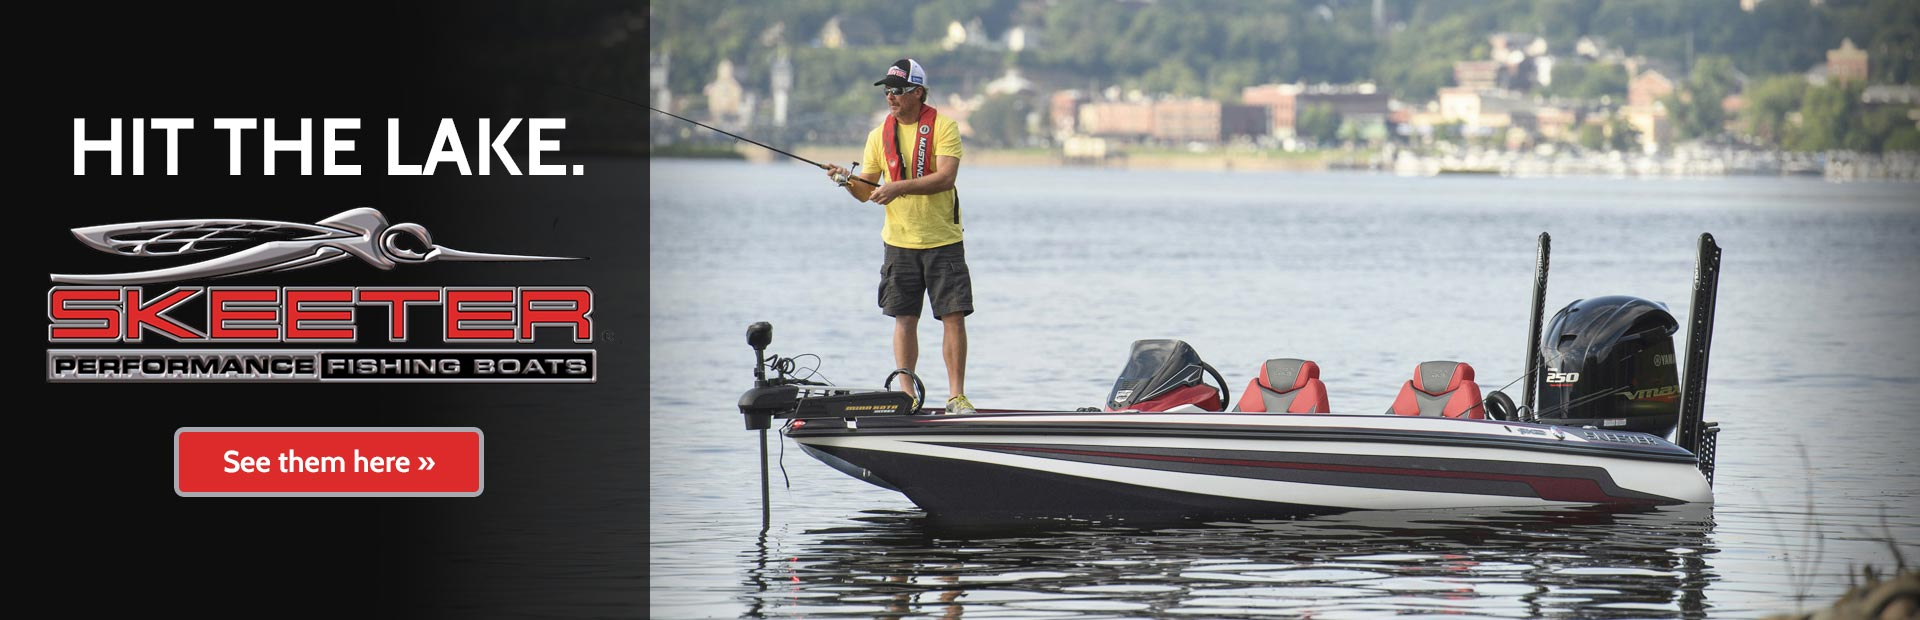 Skeeter Boats: Click here to view the models.